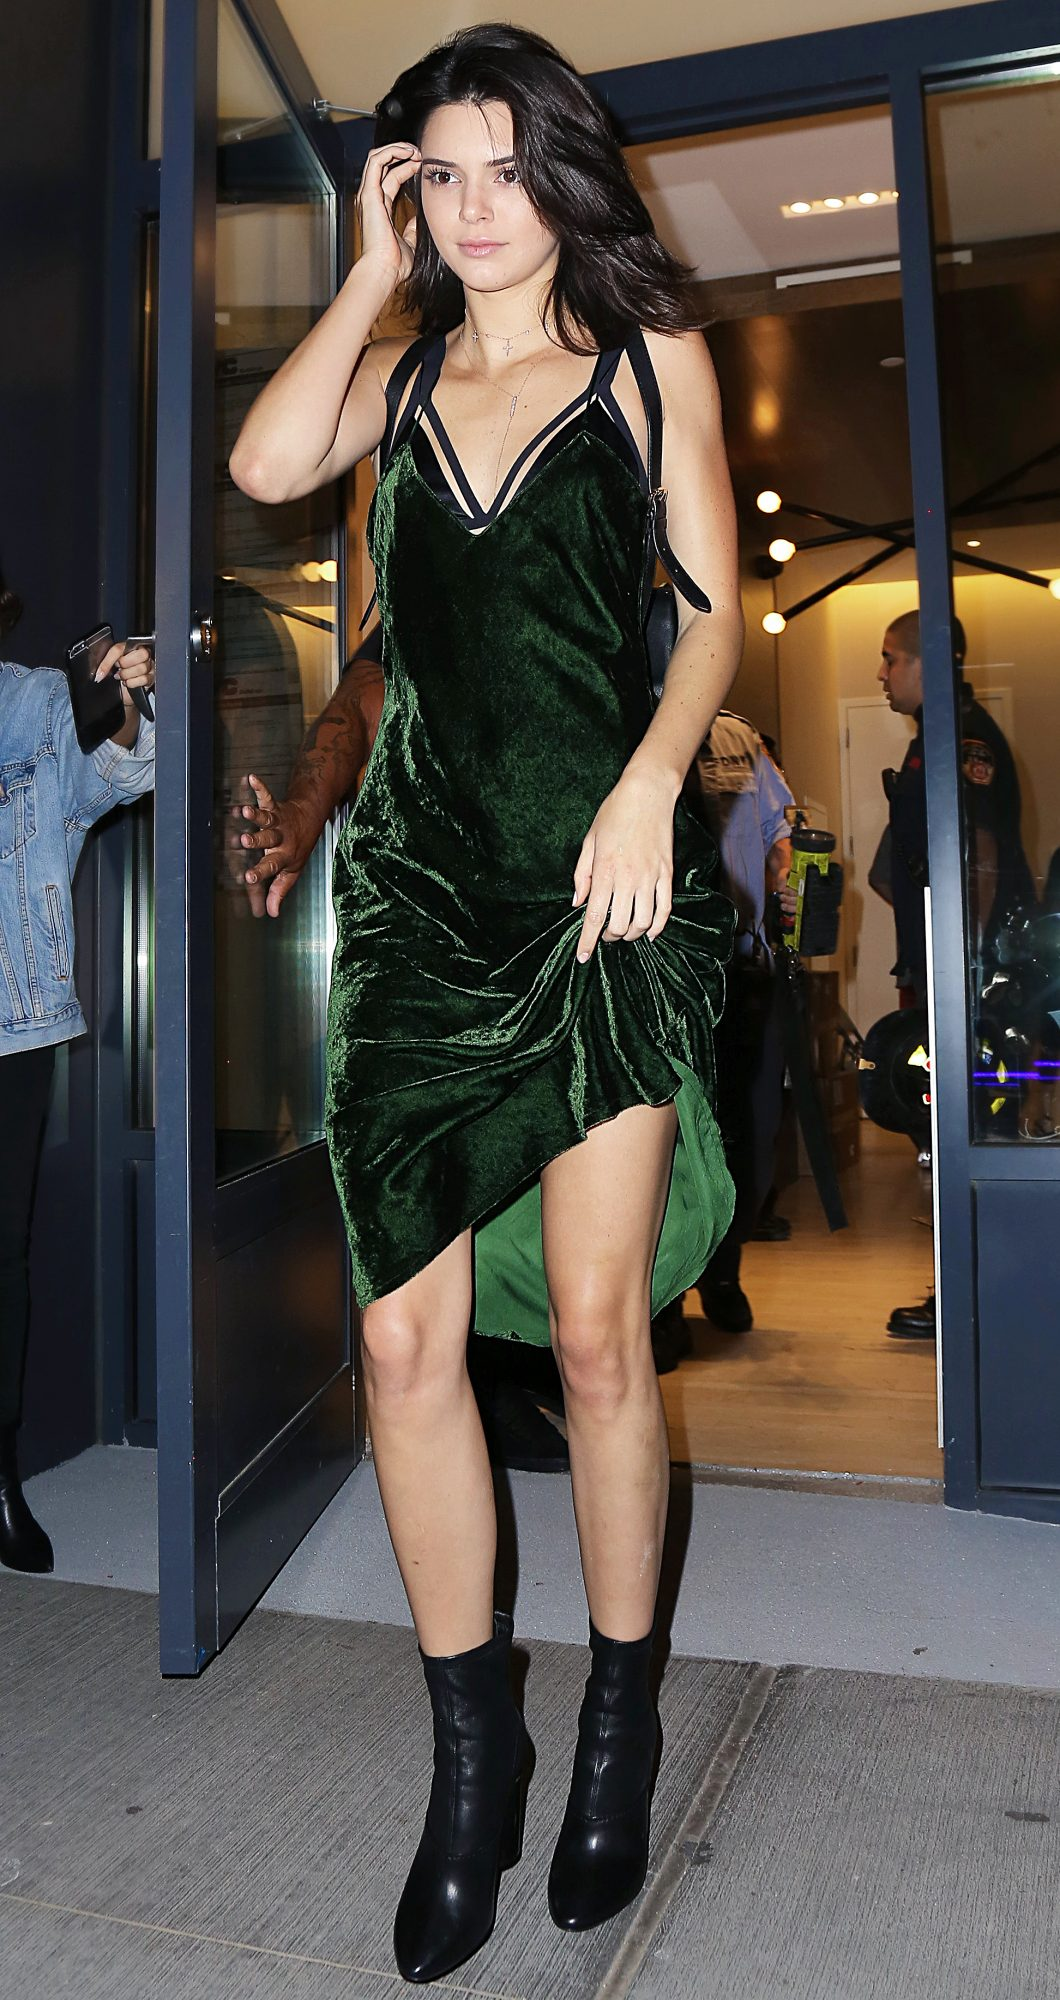 Kendall Jenner steps out in green dress and boots in NYC